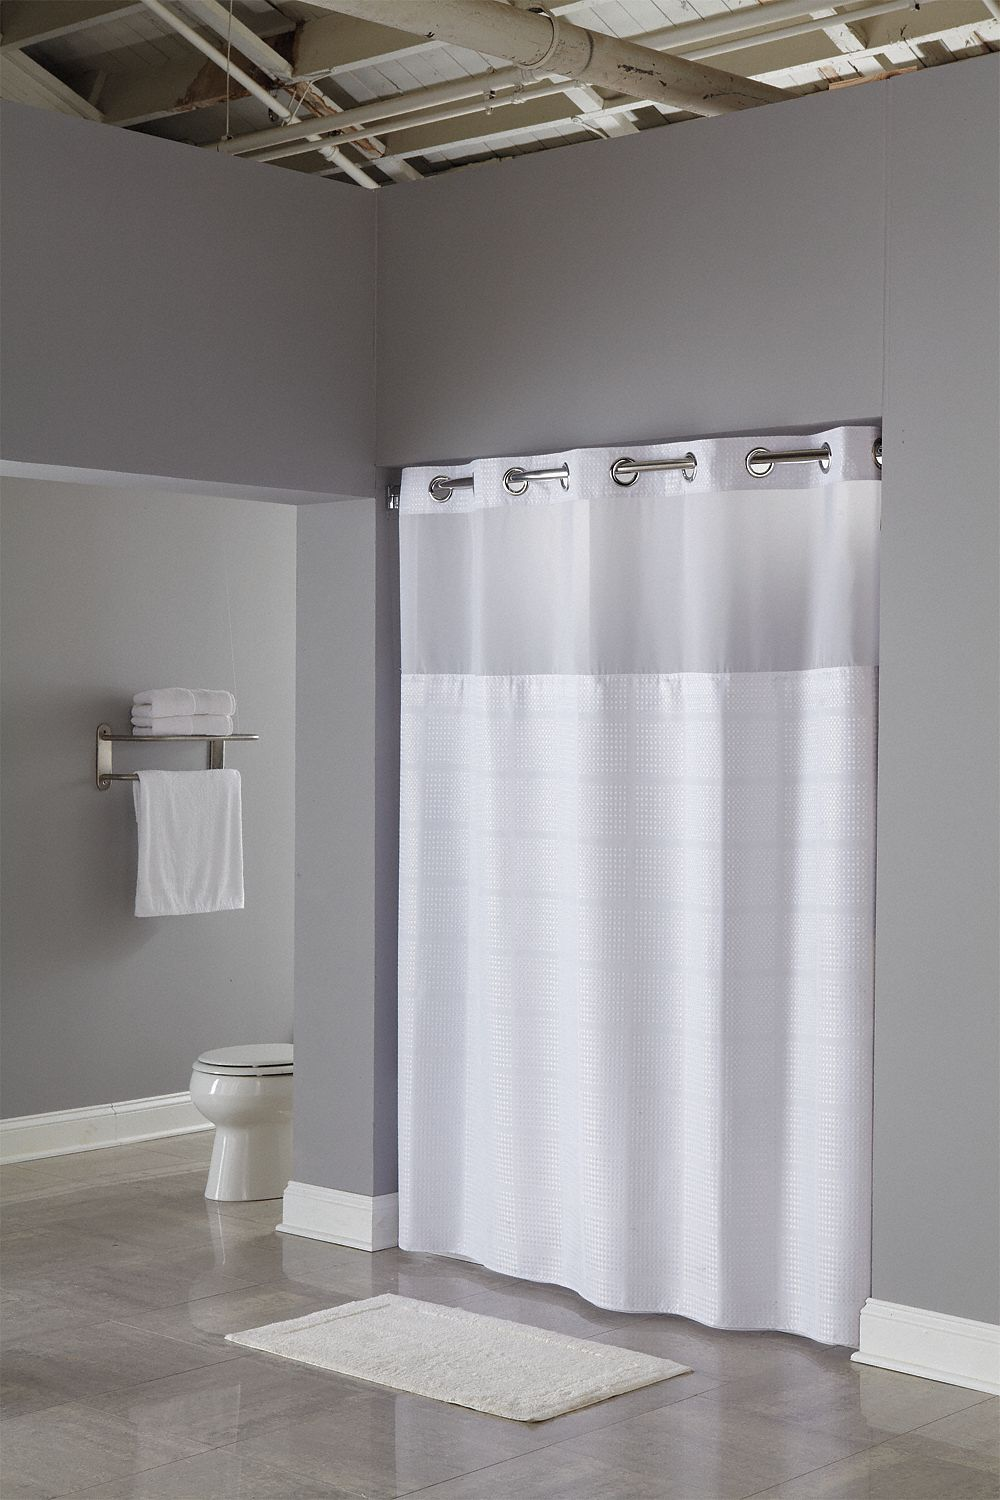 Shower Curtain,  71 in Width,  RePET,  White,  Hookless